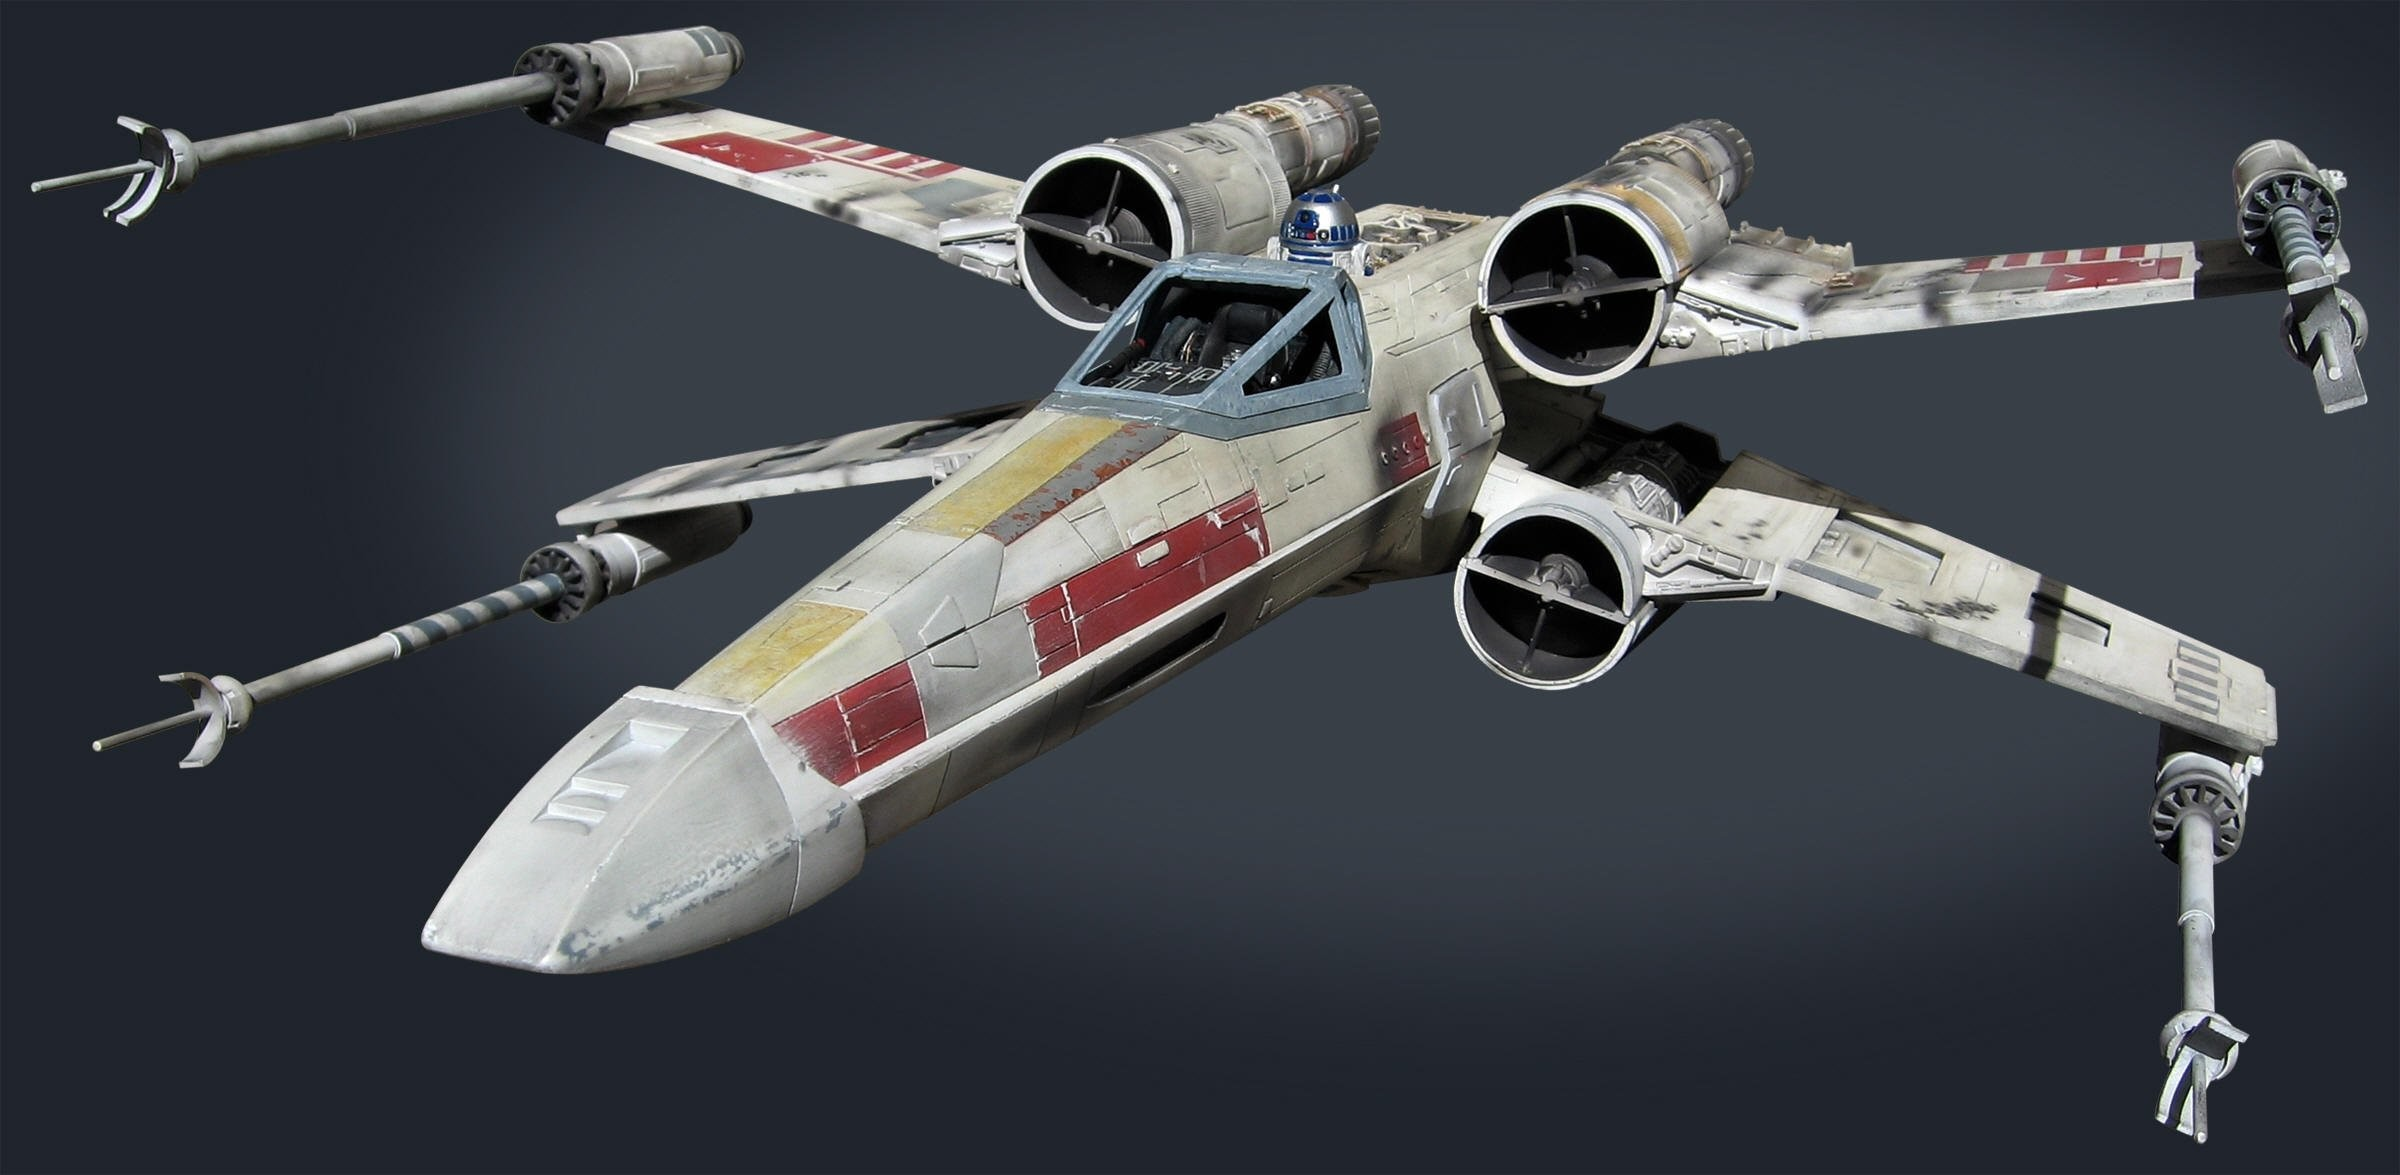 2400x1175 STAR WARS X -WING spaceship futuristic space sci-fi xwing wallpaper |   | 811208 | WallpaperUP